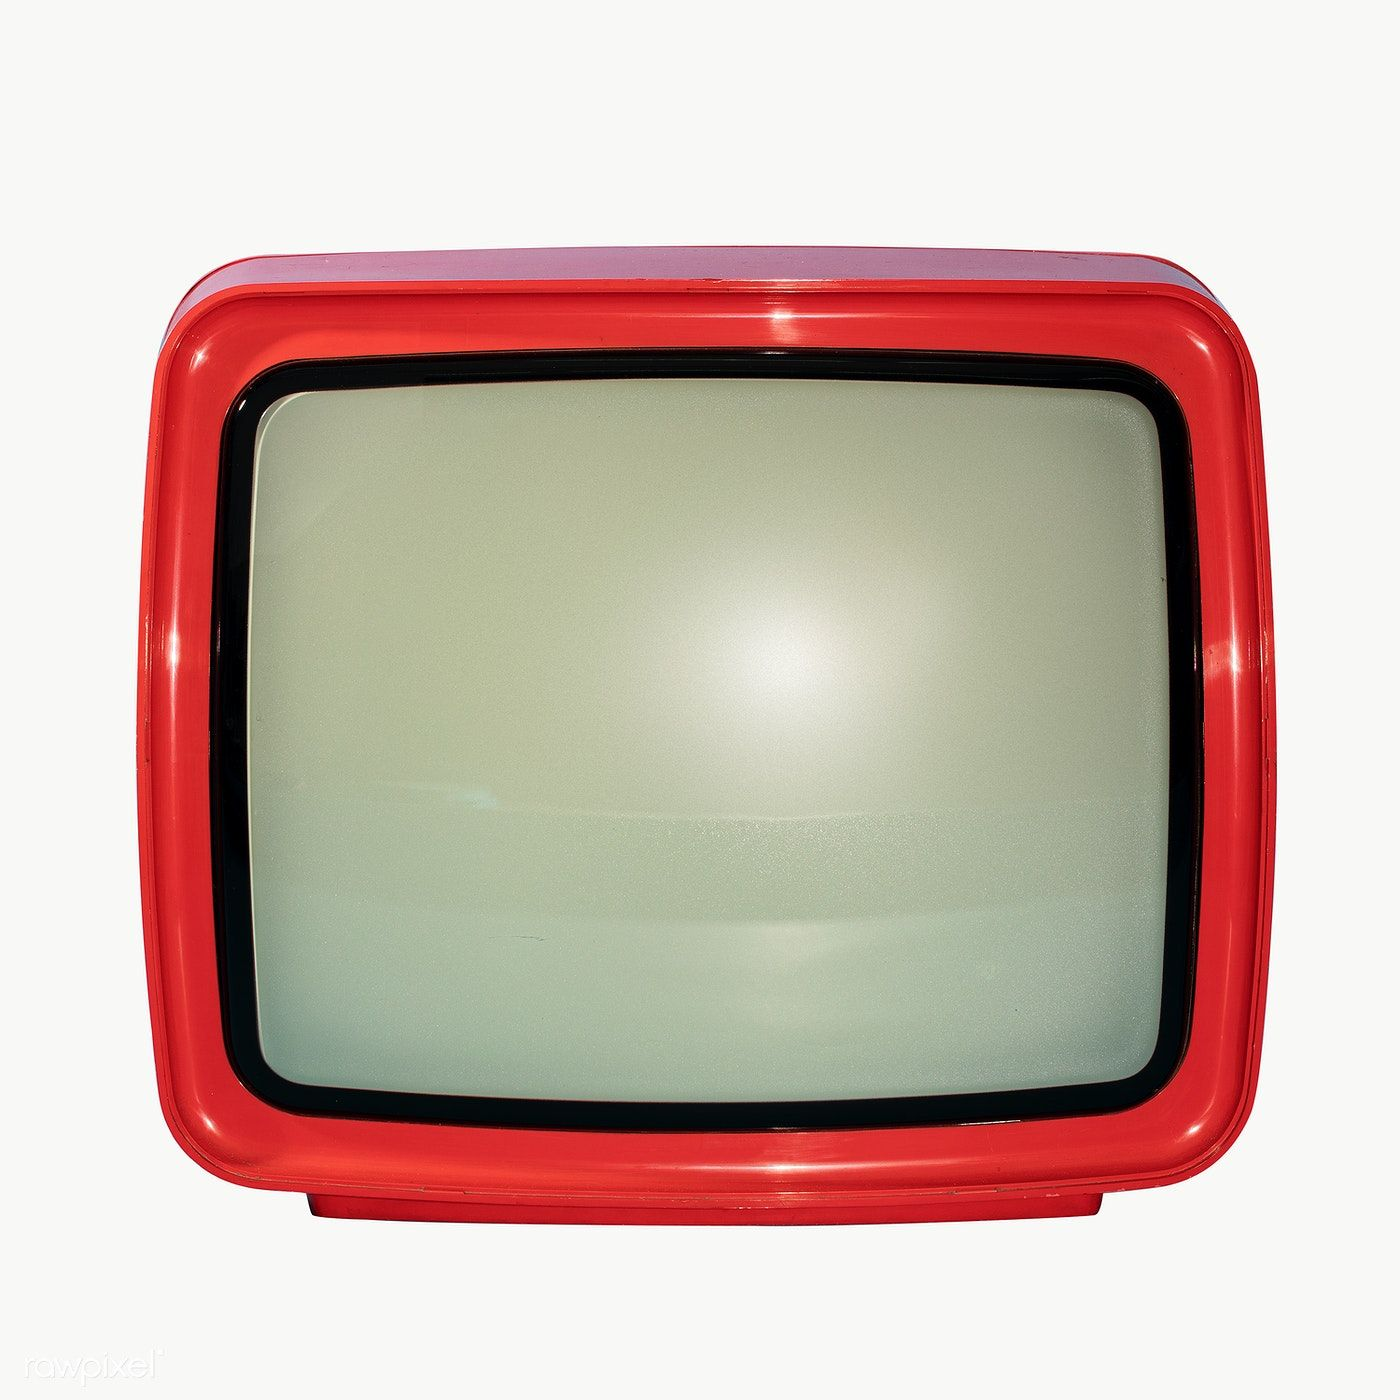 Download Premium Png Of Retro Red Television Transparent Png 2050840 In 2020 Png Retro Transparent